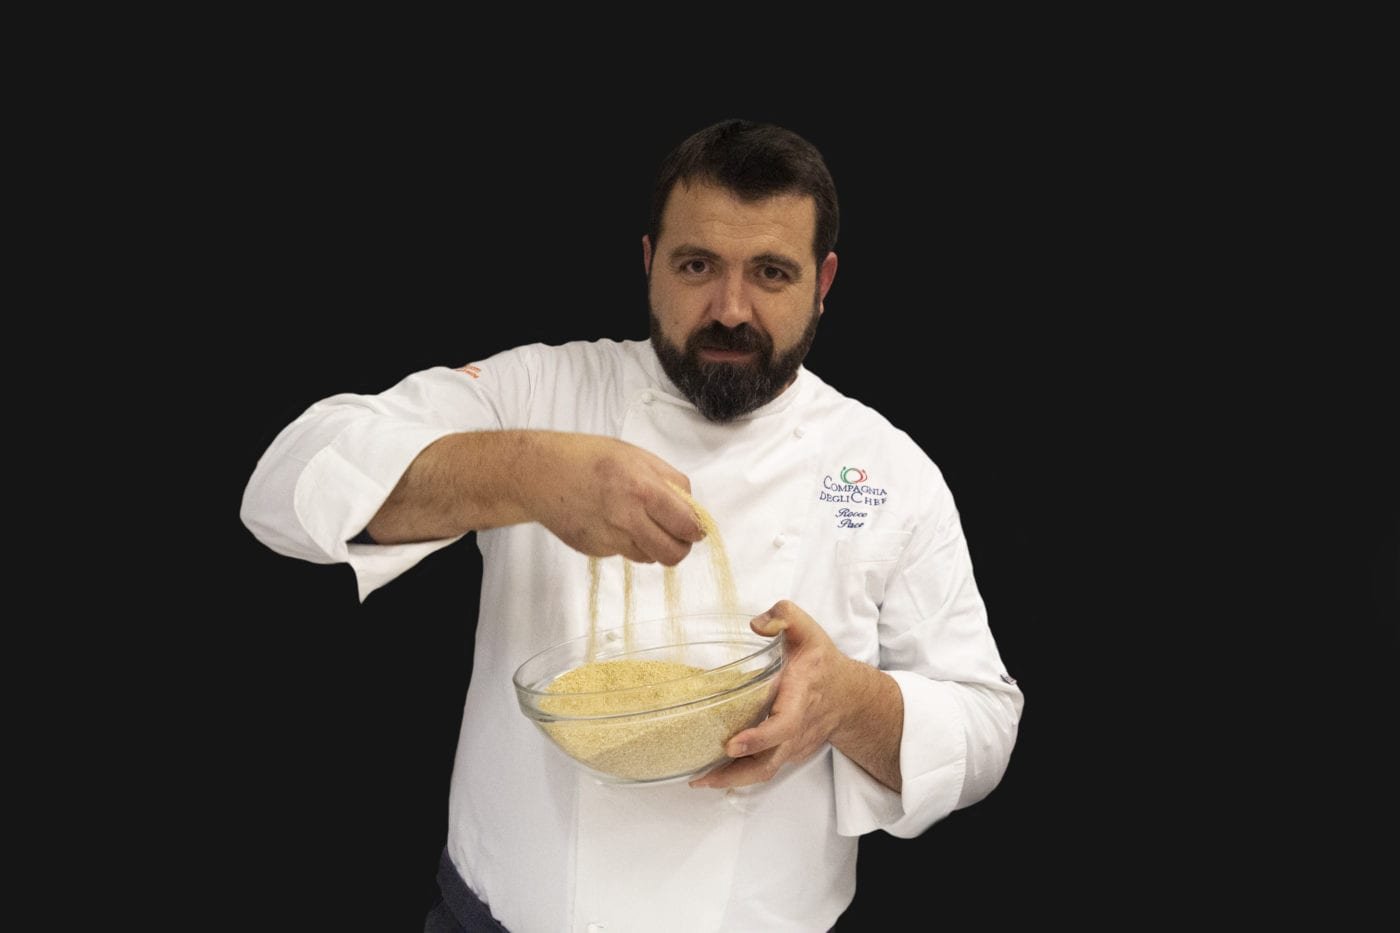 Rocco Pace chef